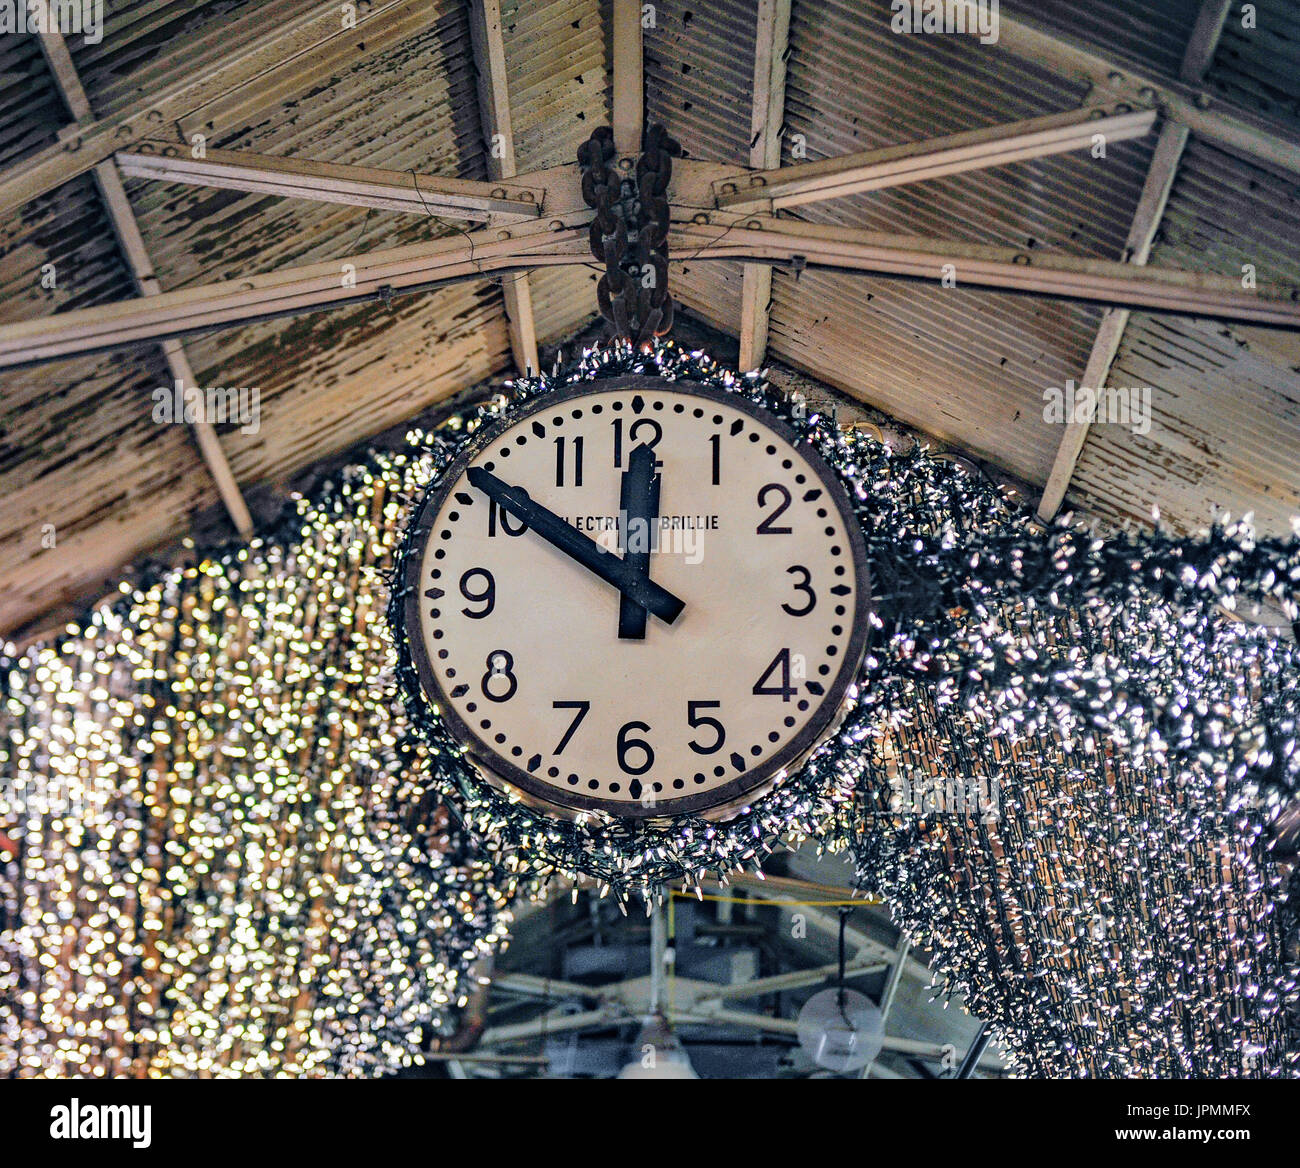 An Electrique Brillie clock hanging from the rafters at Chelsea Market, in Manhattan, NYC - Stock Image